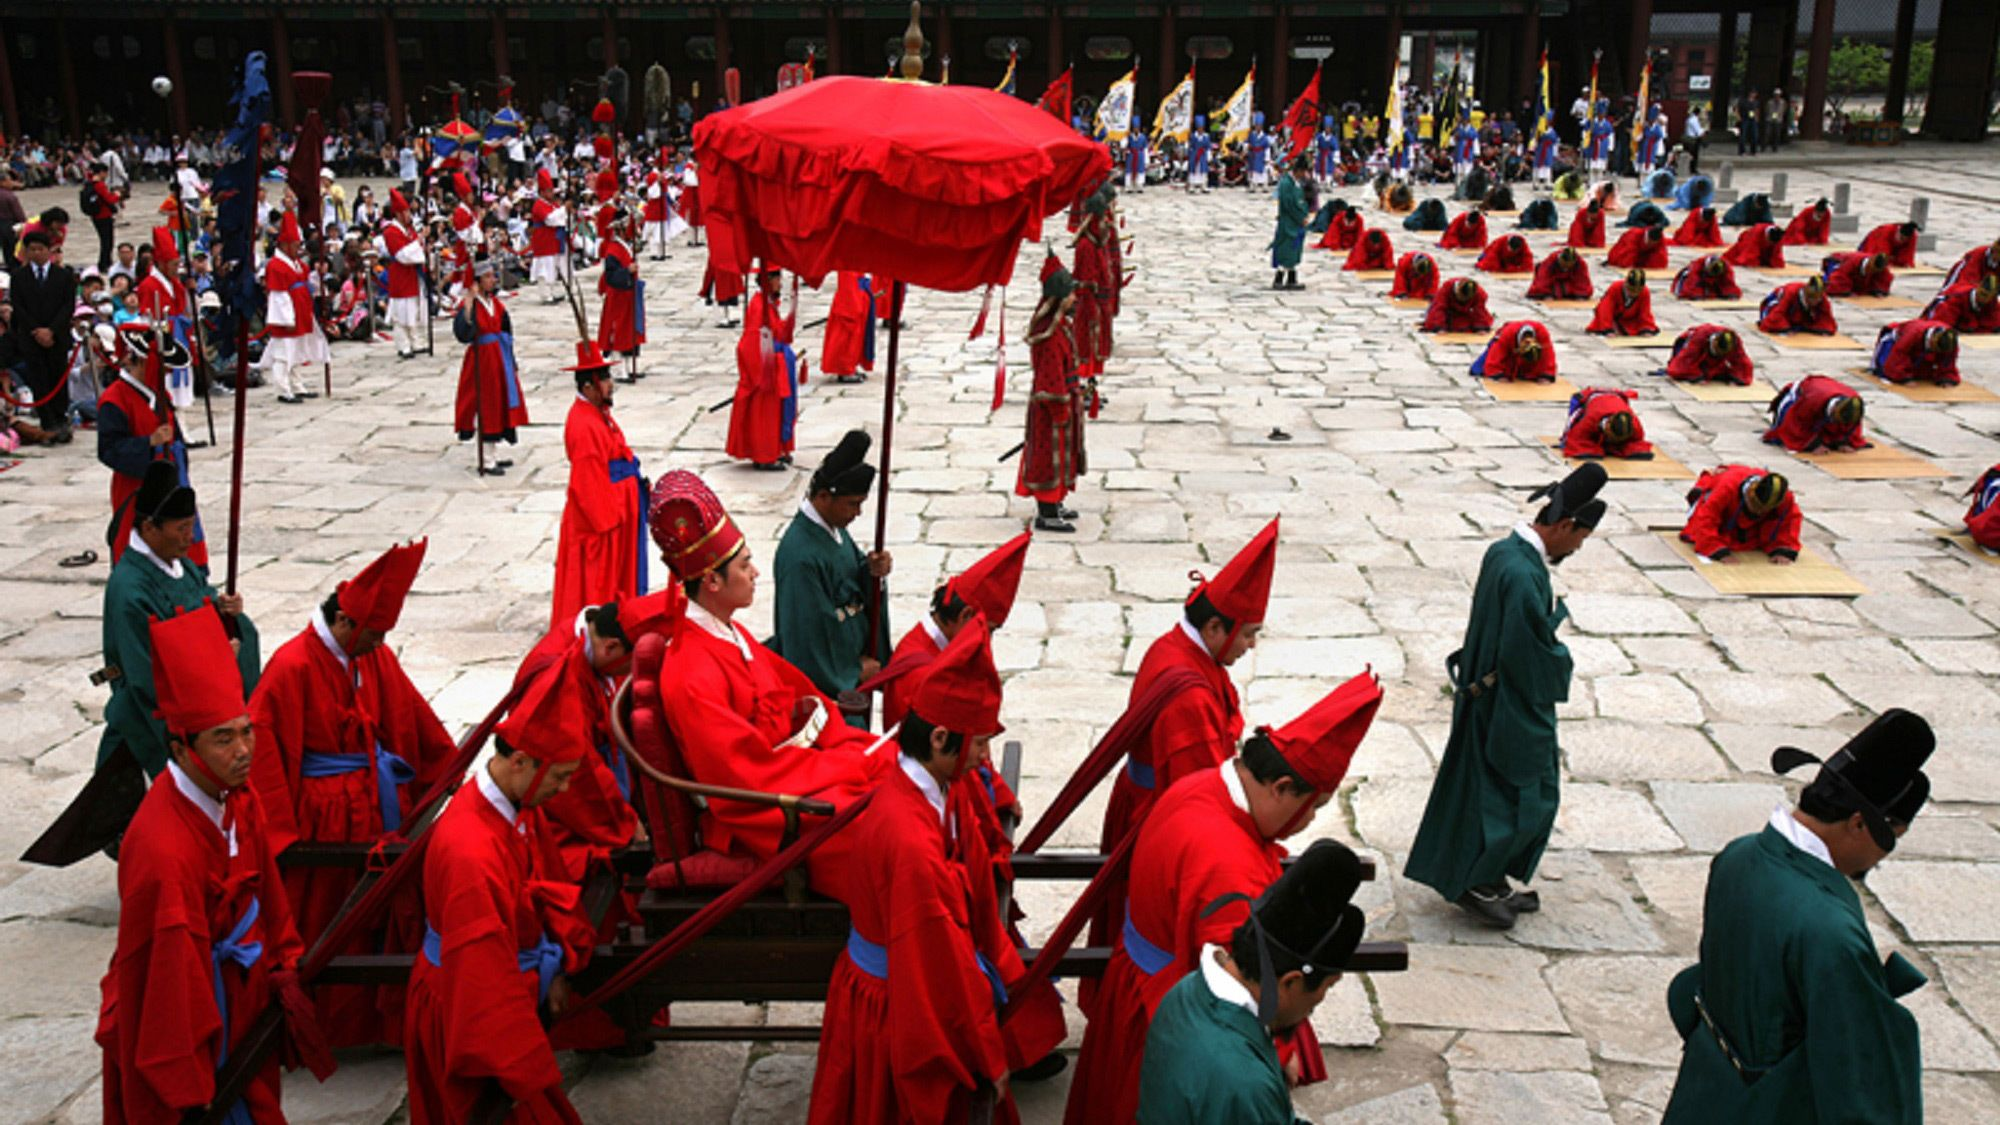 Cultural practices taking place in Seoul